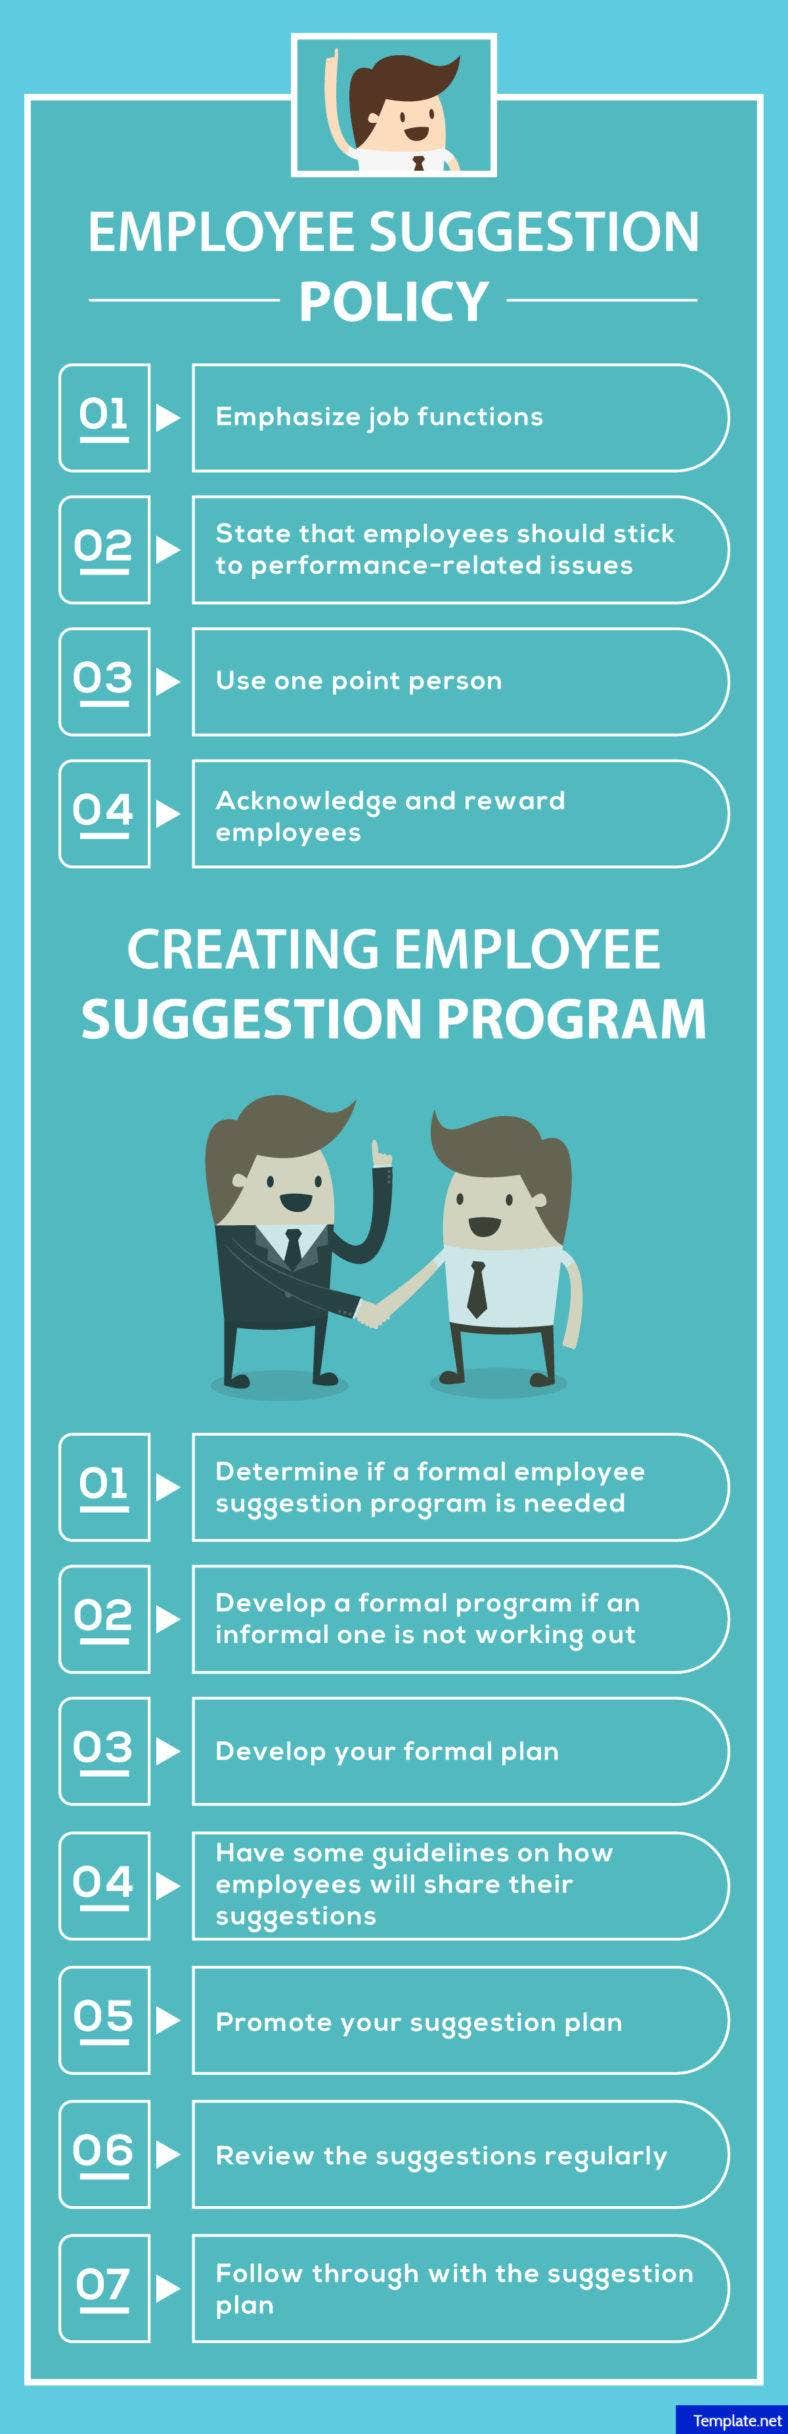 create an employee suggestion policy 788x2434